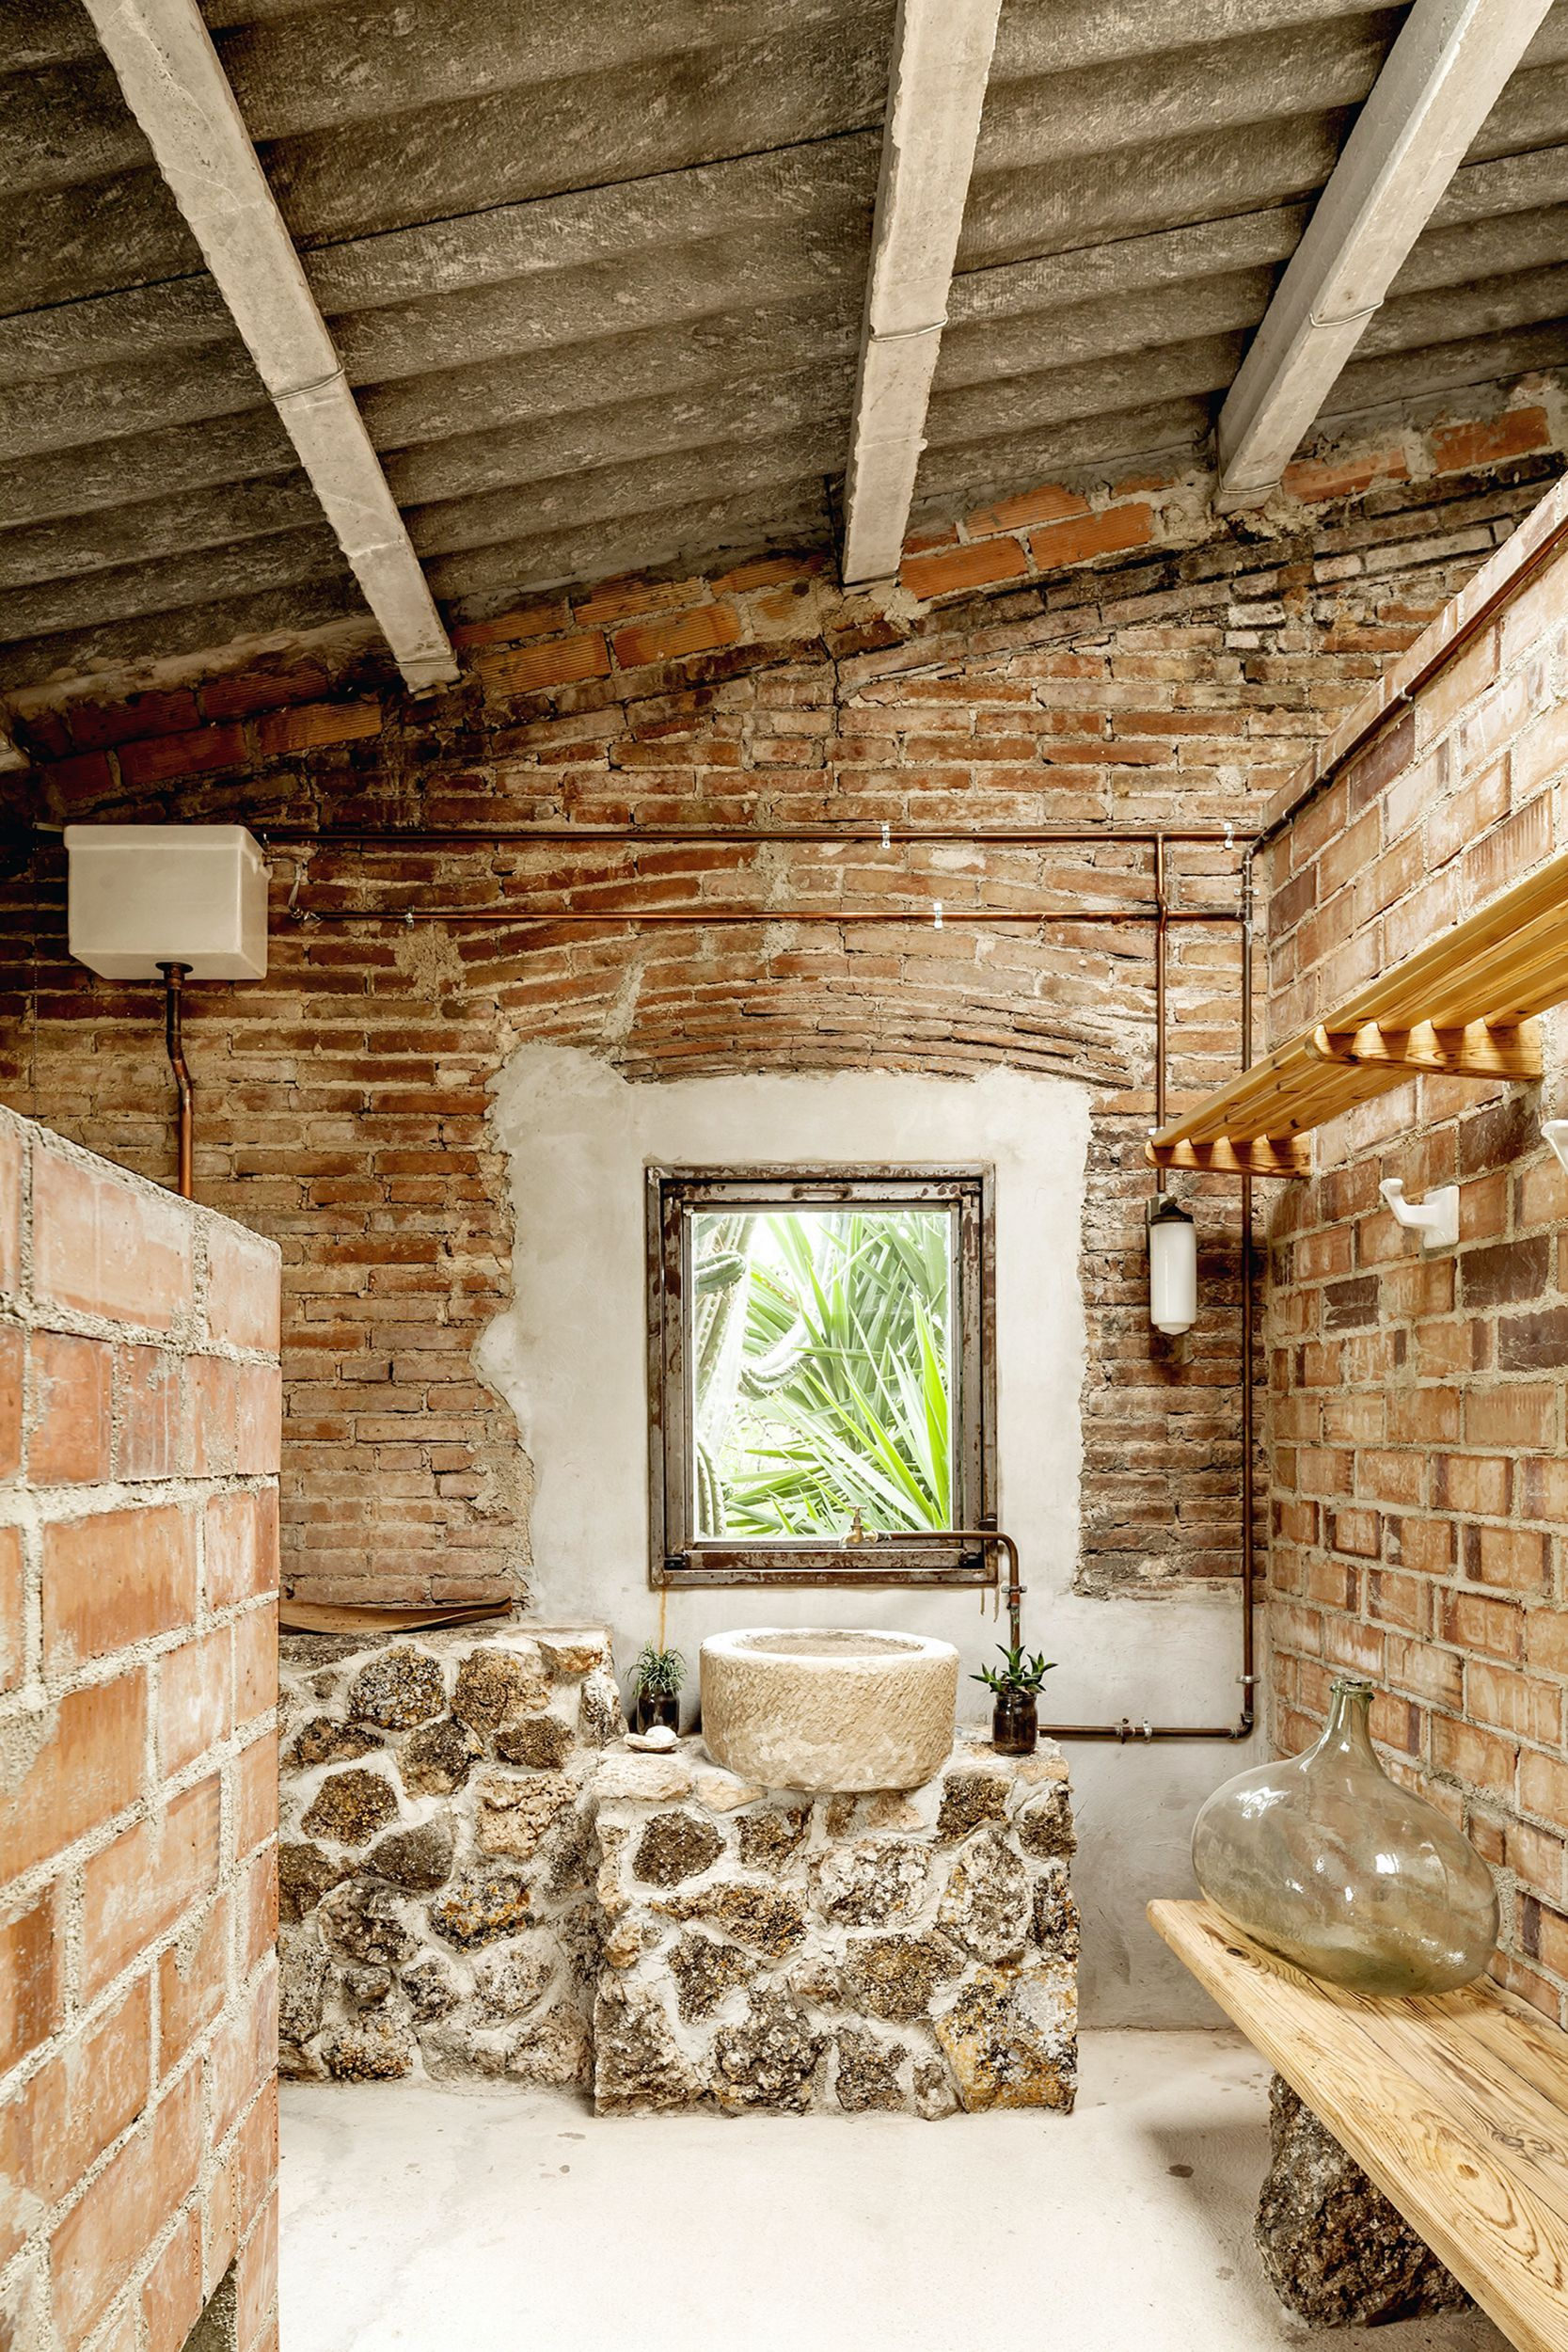 15 Majestic Rustic Brick Wall Bathroom Design On A Budget Decor It S In 2020 Rustic Room Rustic Bathroom Designs Rustic Bathrooms